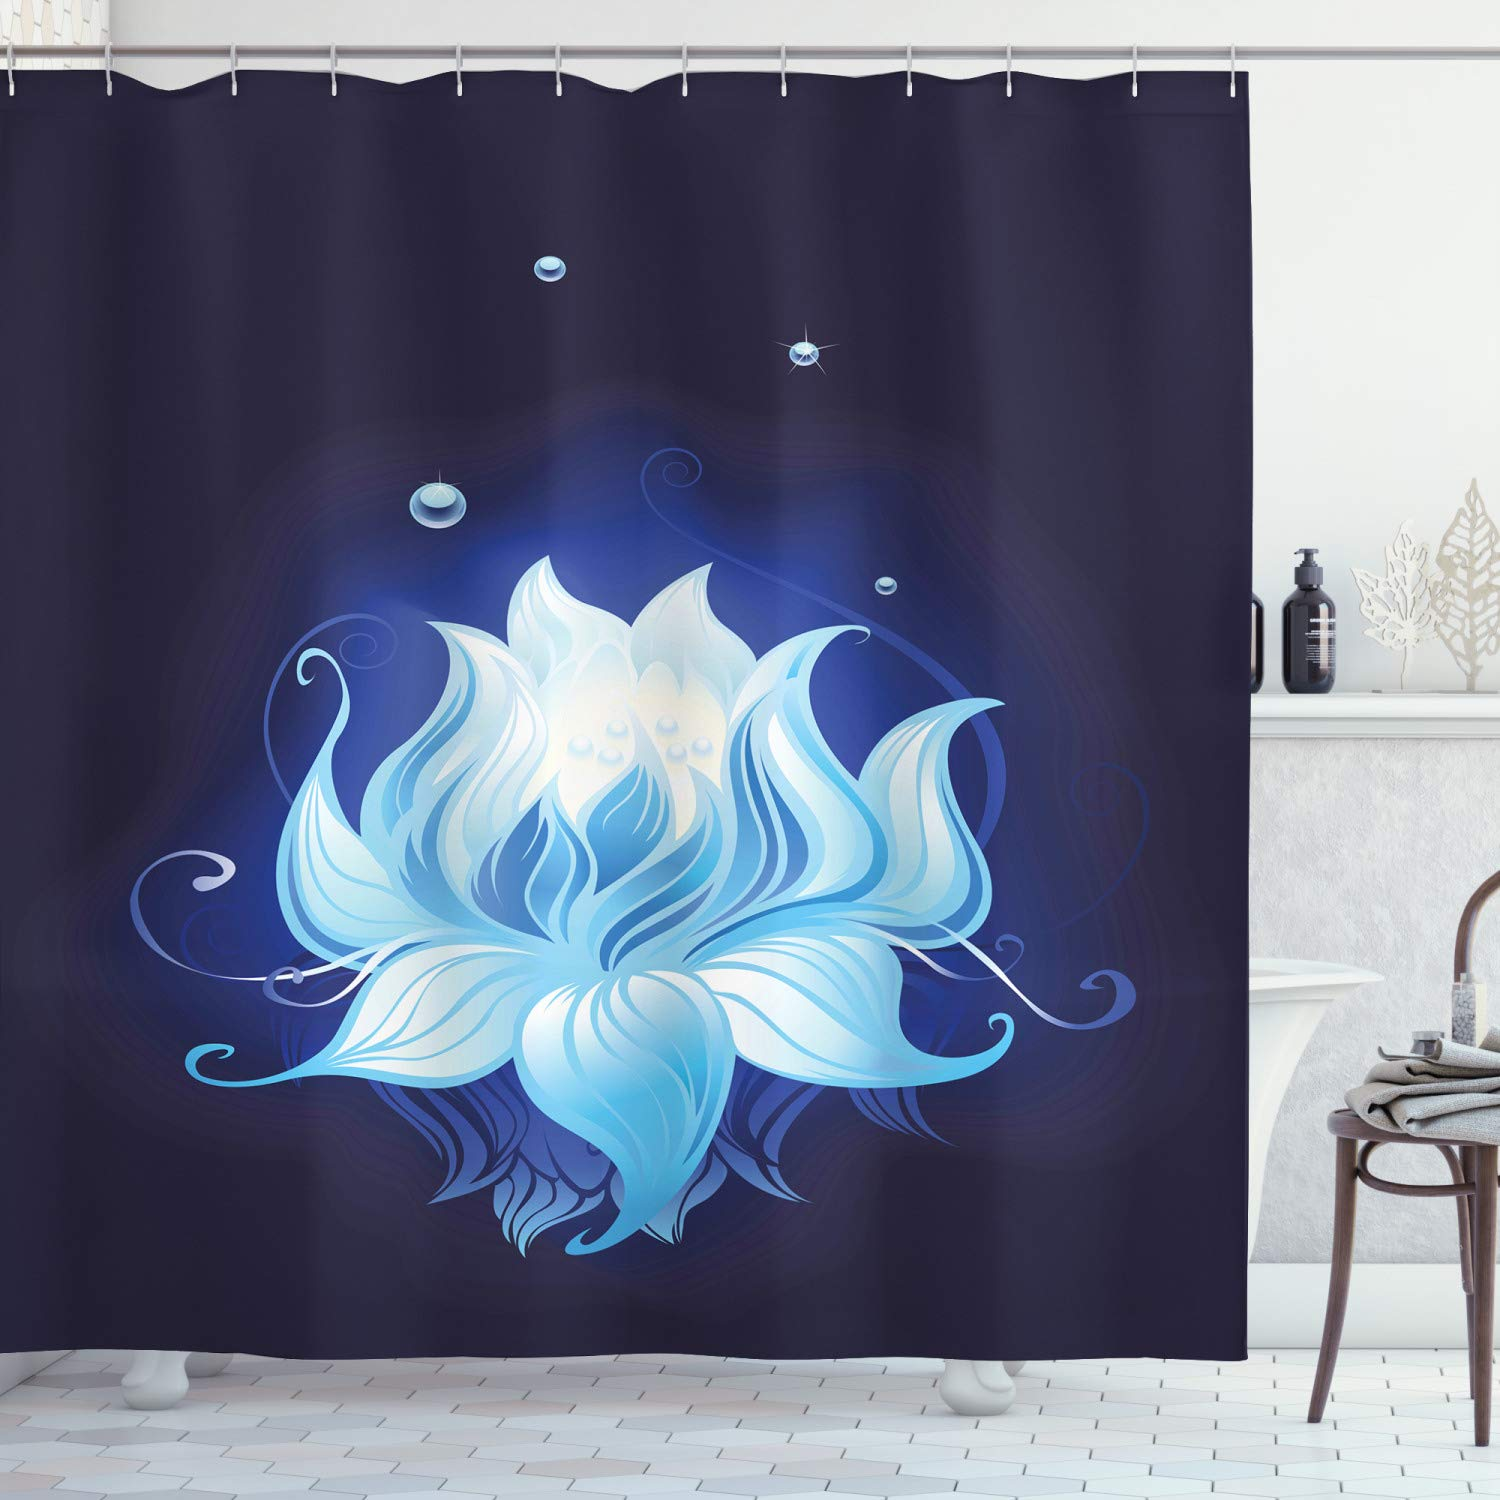 """Ambesonne Floral Shower Curtain, Lotus with Dew Drops Reflected in Dark Water Background Yoga Spirit Image, Cloth Fabric Bathroom Decor Set with Hooks, 70"""" Long, Indigo Blue"""